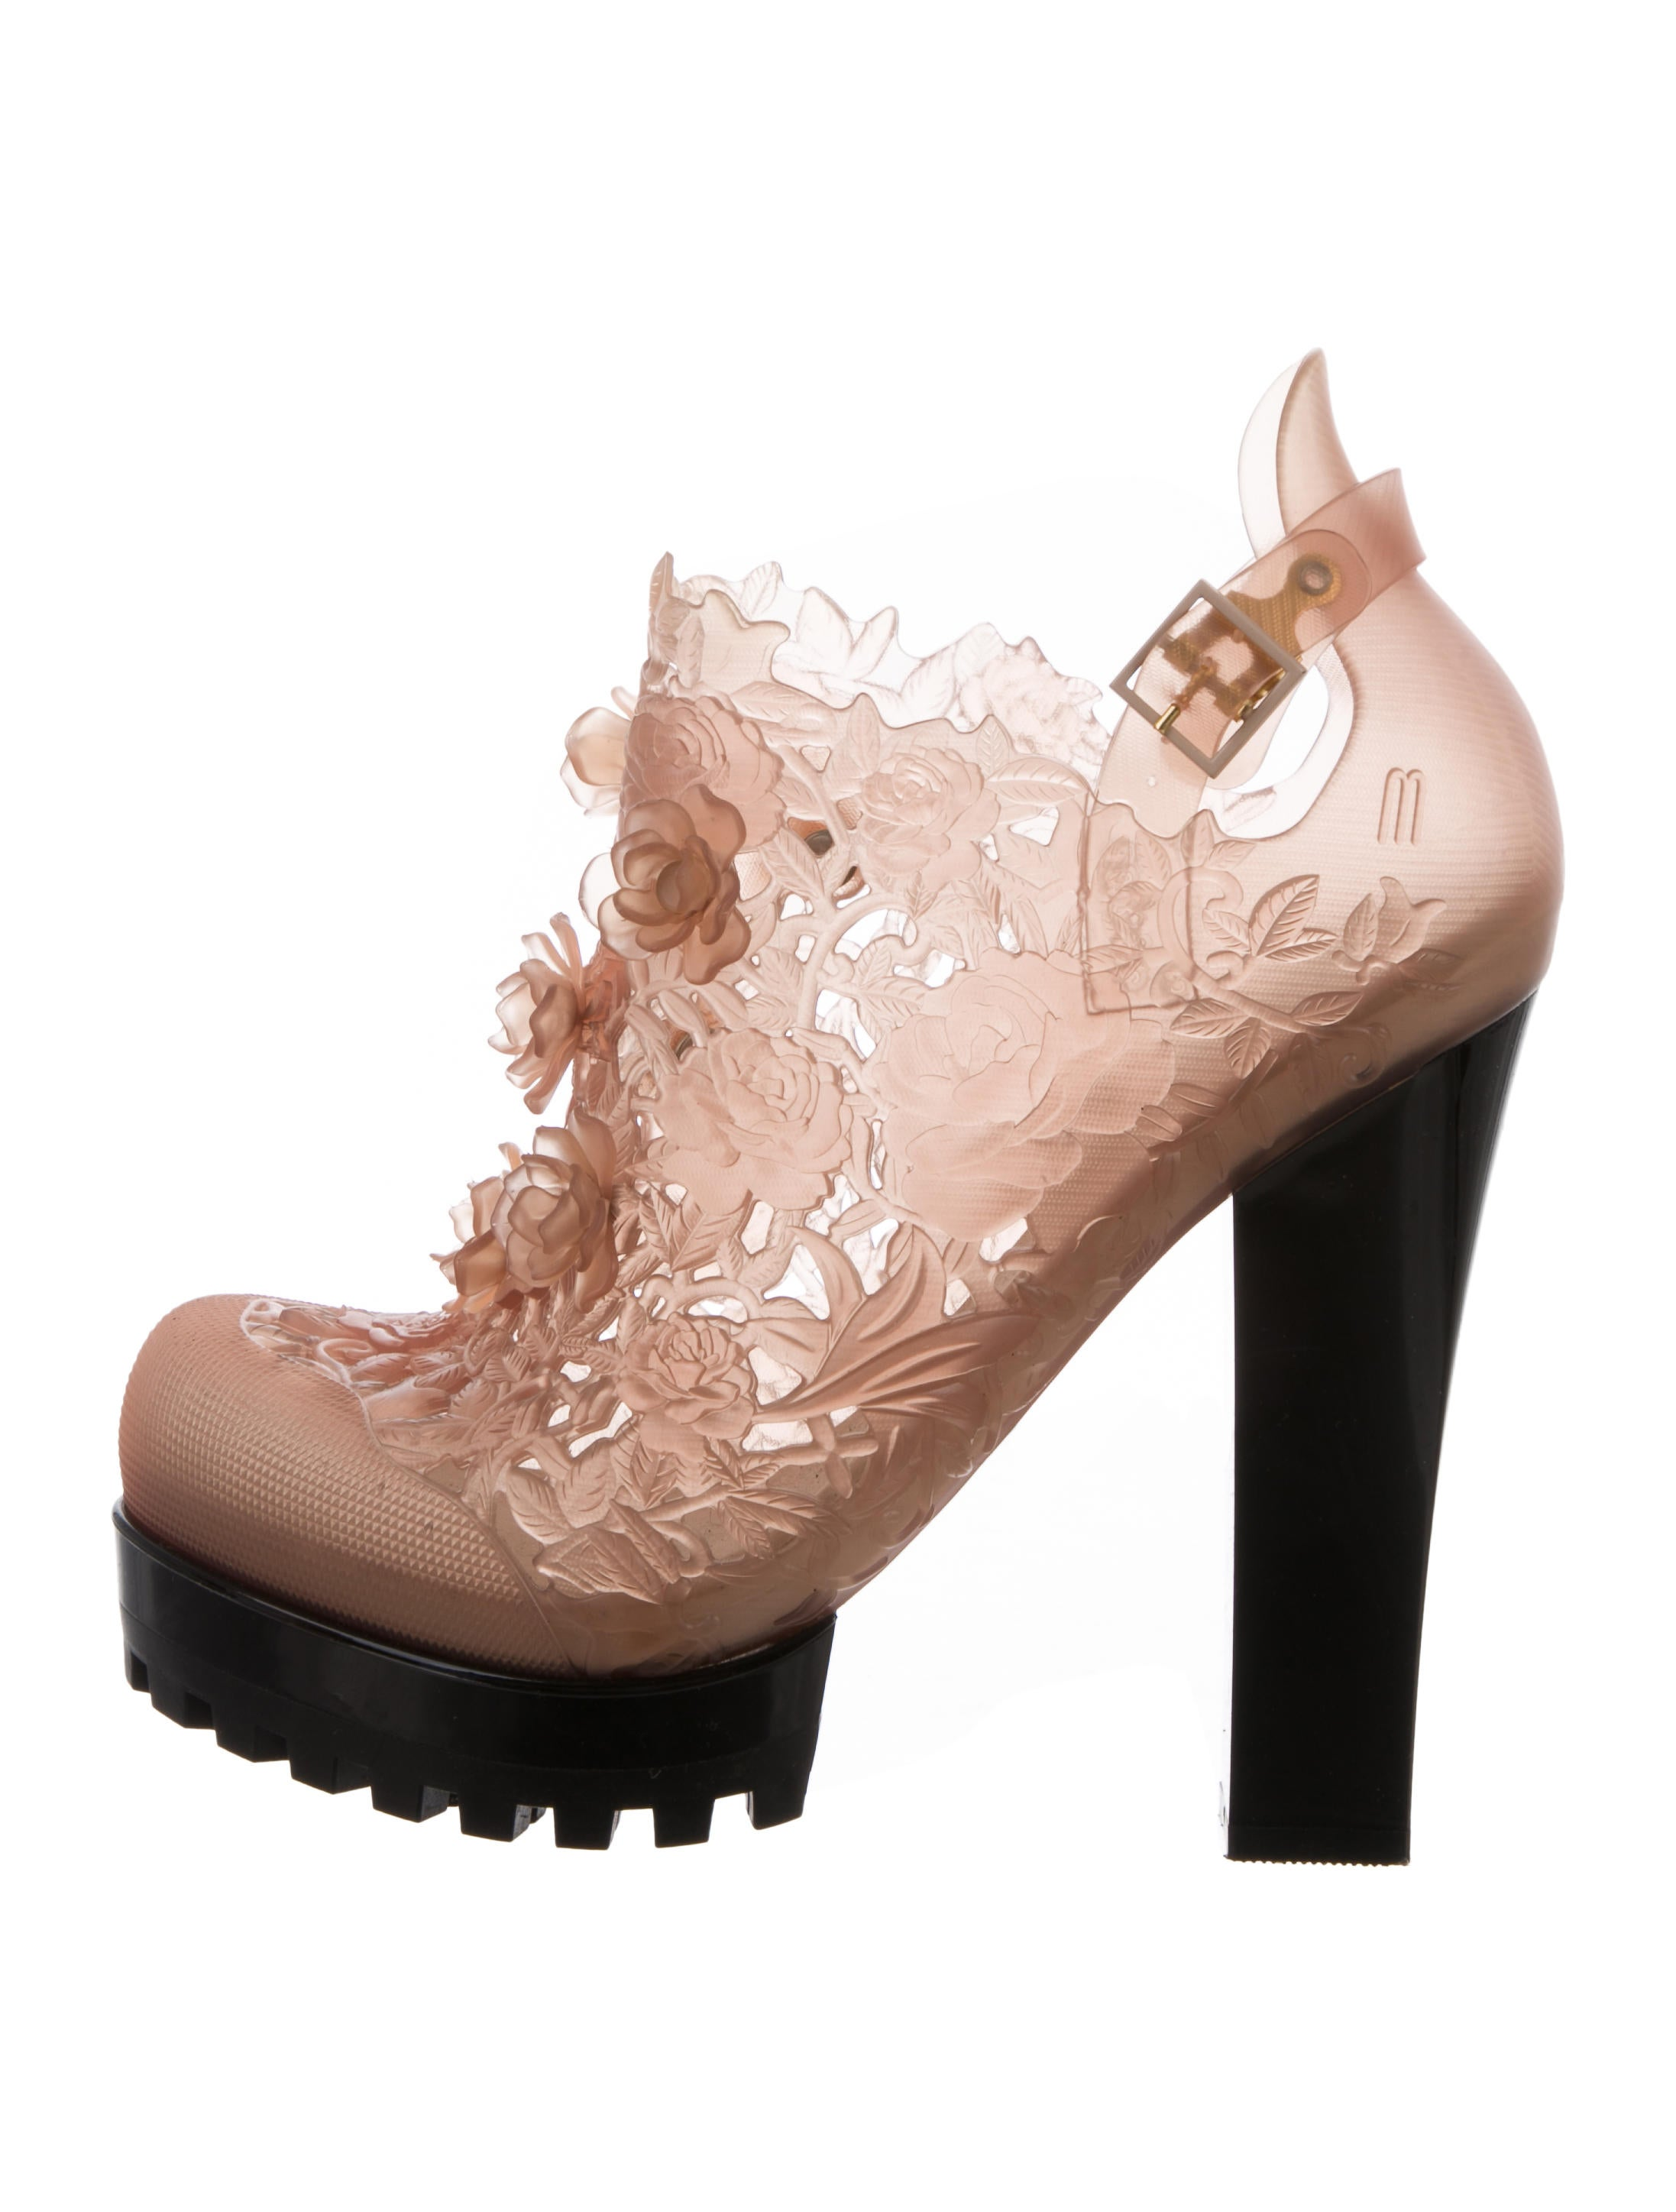 Melissa x Alexandre Herchcovitch Floral Ankle Boots finishline online buy cheap outlet locations vFGf1e80d